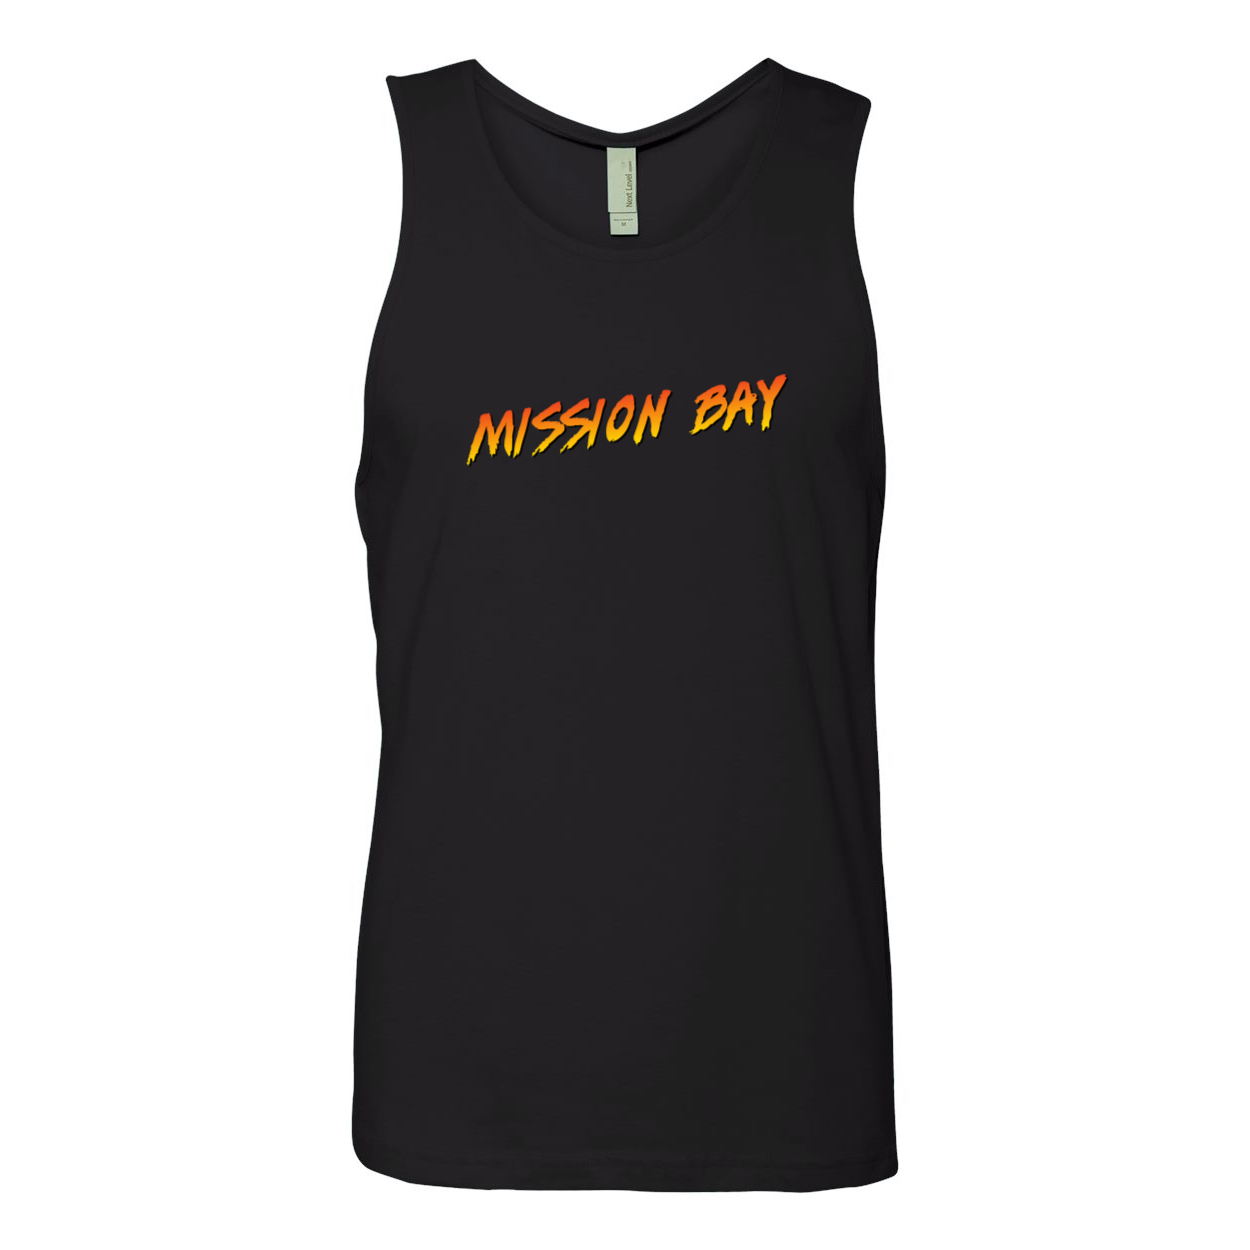 Mission Bay - Tank Top (Men's)